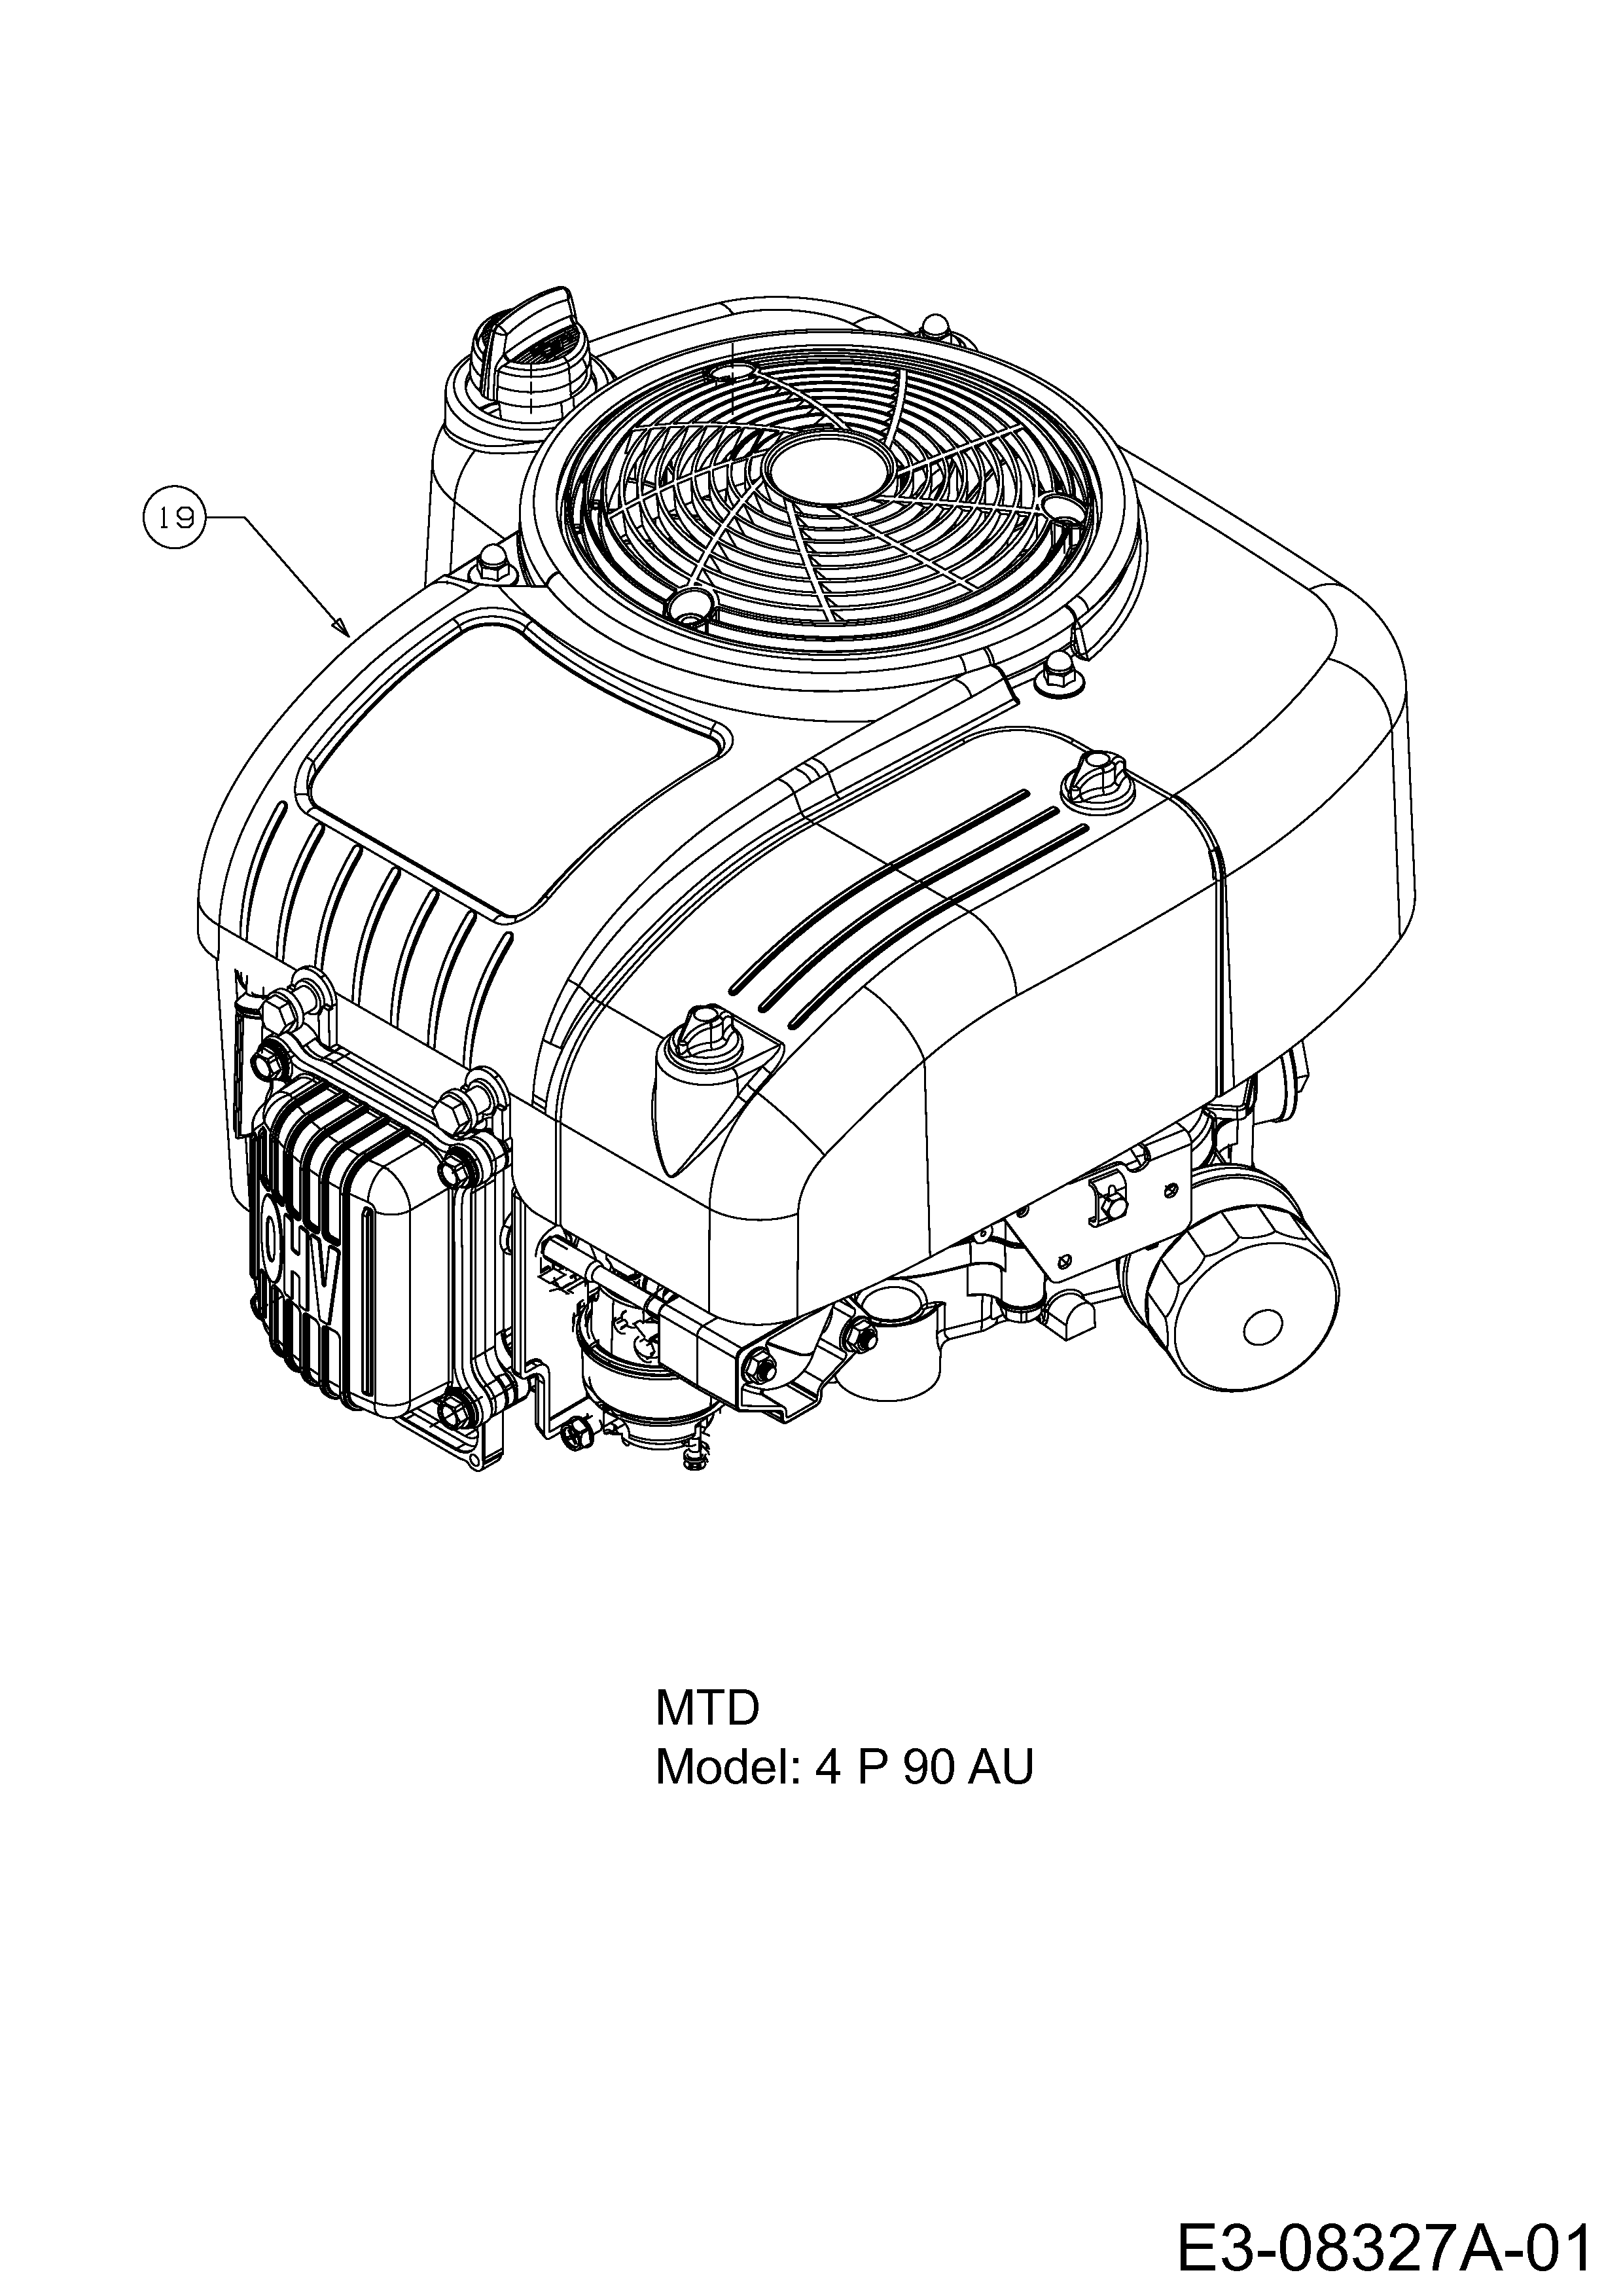 Mtd Smart Rf 125 M Motor 13c2765f600 2014 Engine Diagram